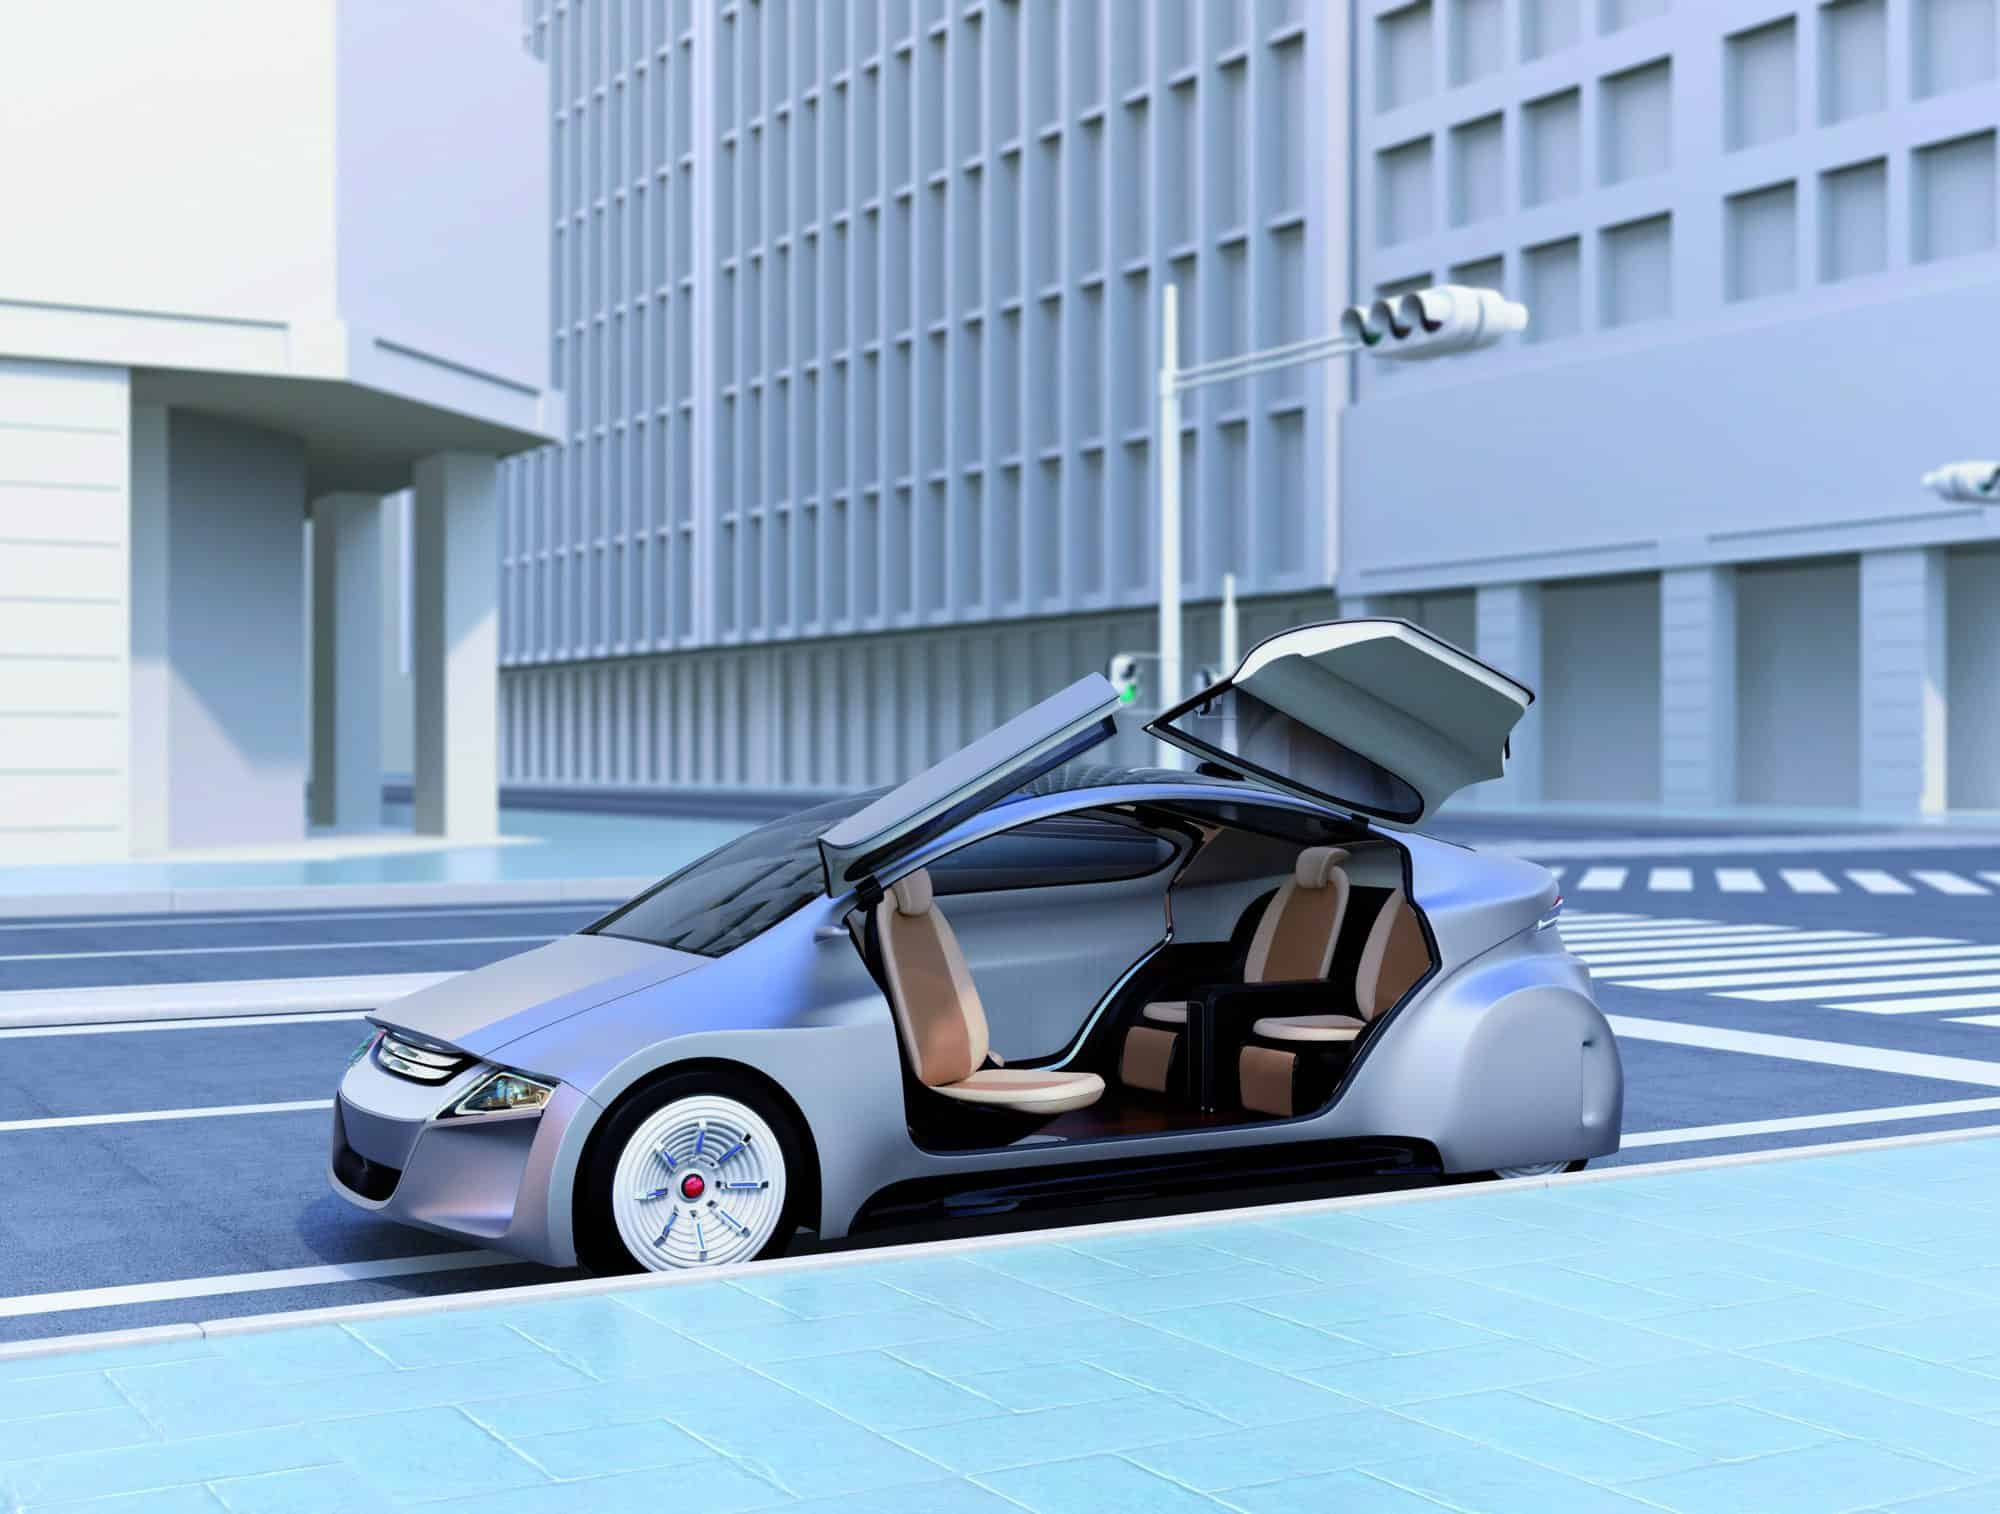 525 Lecture – The Future of the Motor Car featured image